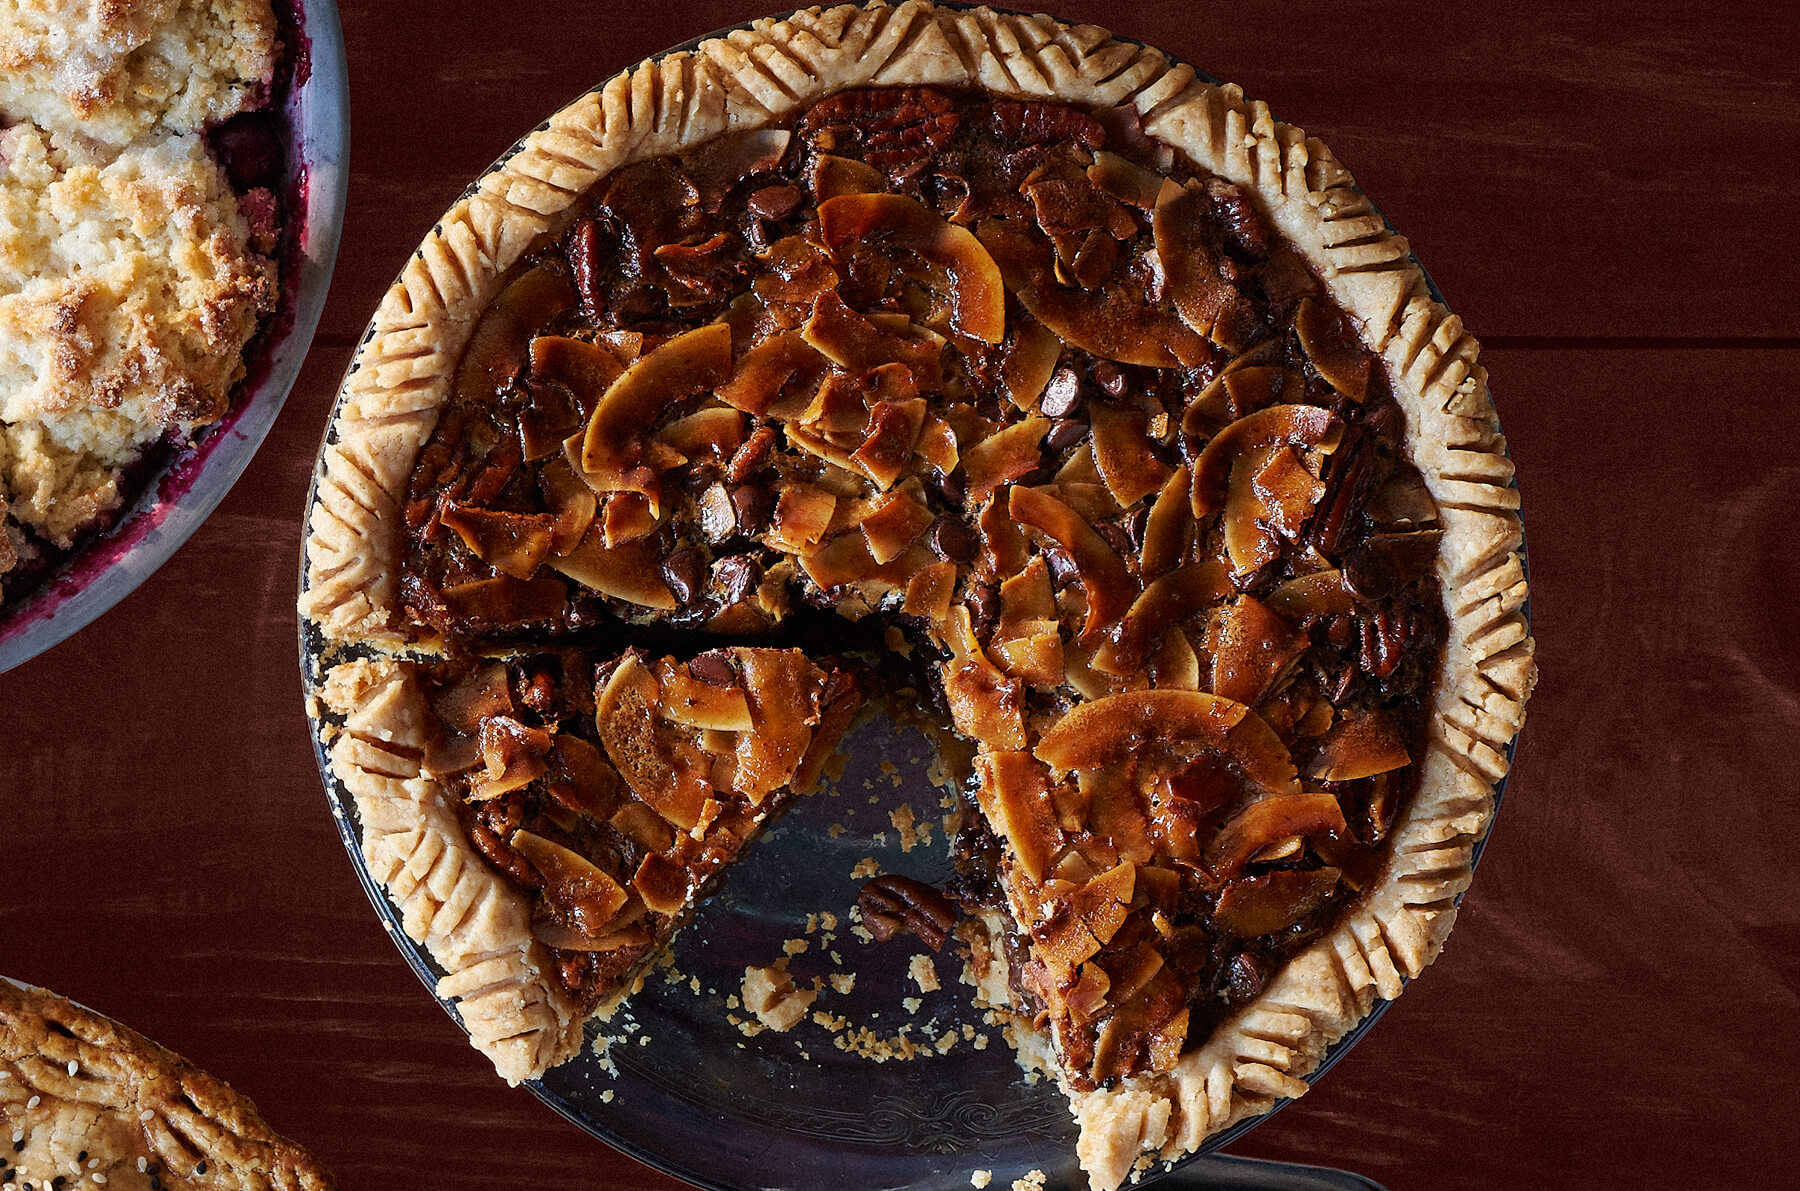 We love pecan pie, and we can tell no lie.